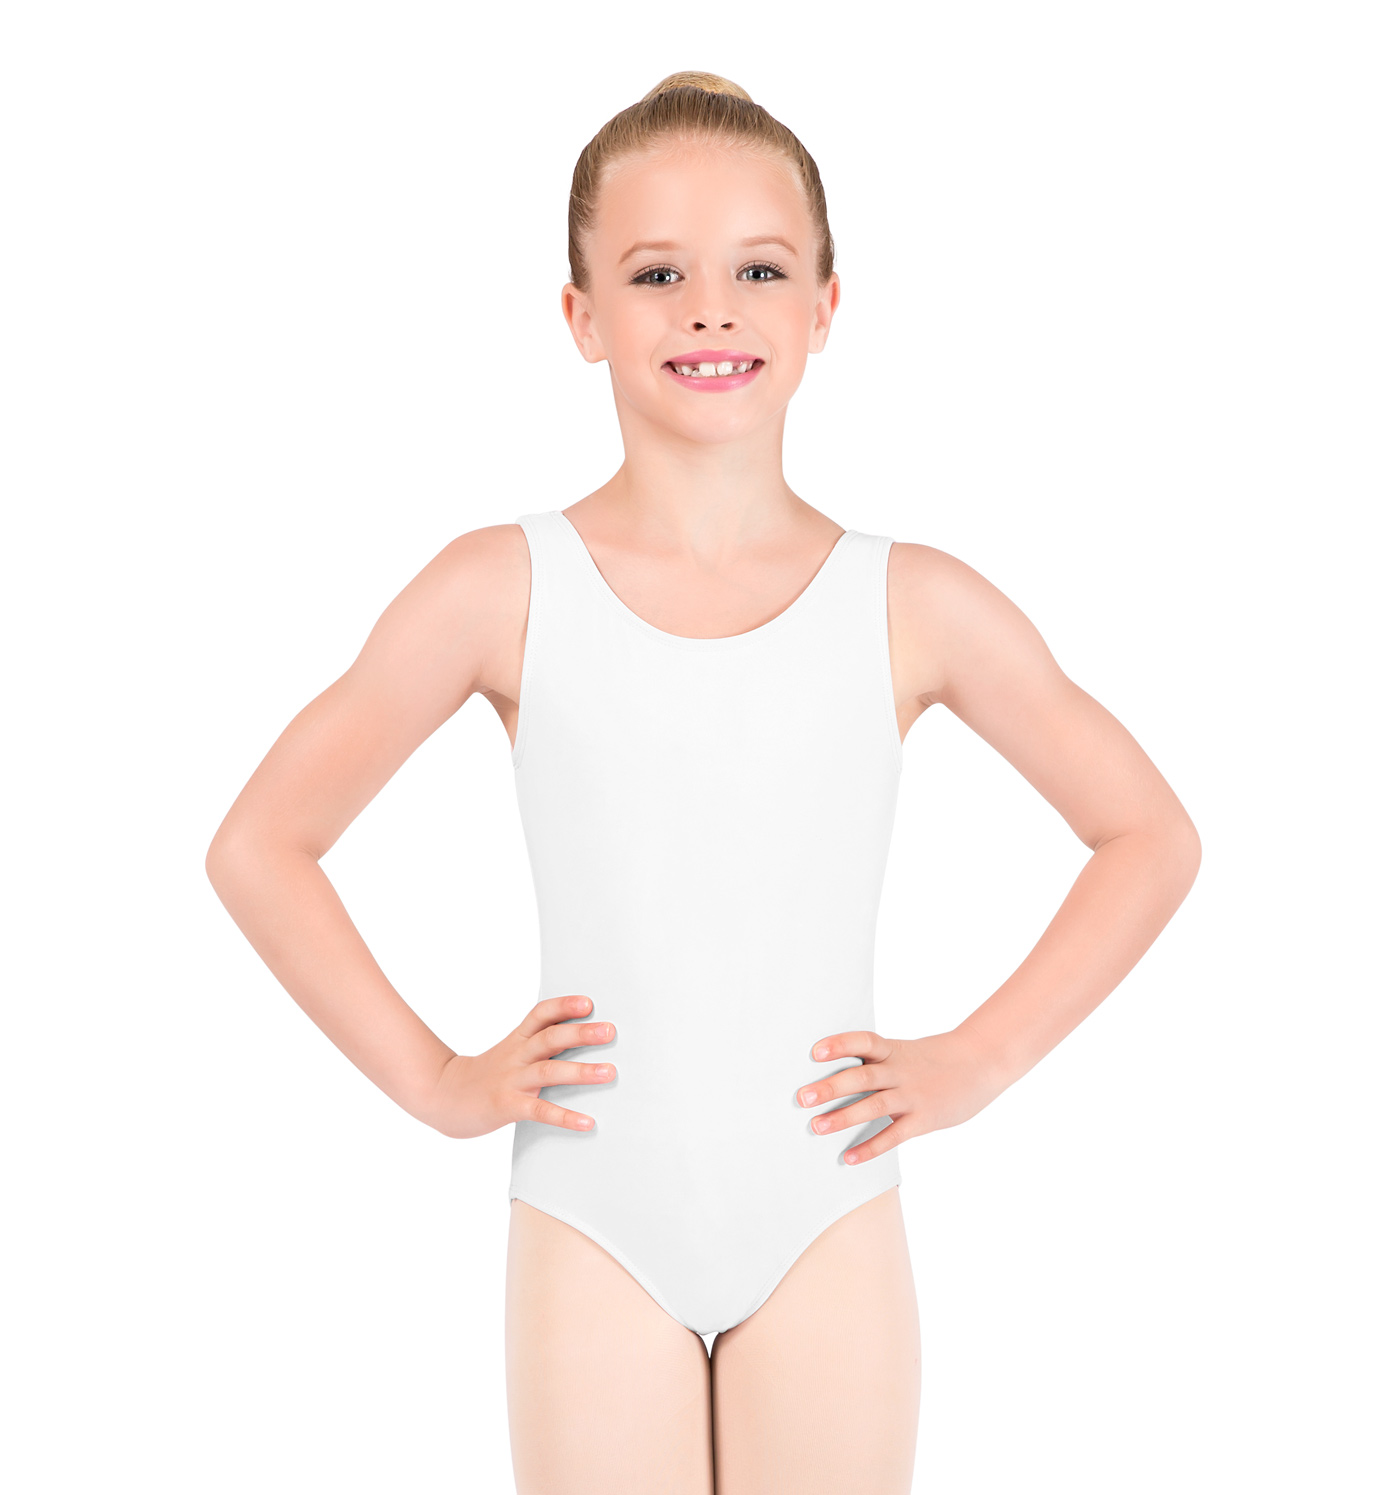 We have one of the largest ranges of boys and girls gymnastics leotards available online from The Zone and many more, contact us today if you need any help!